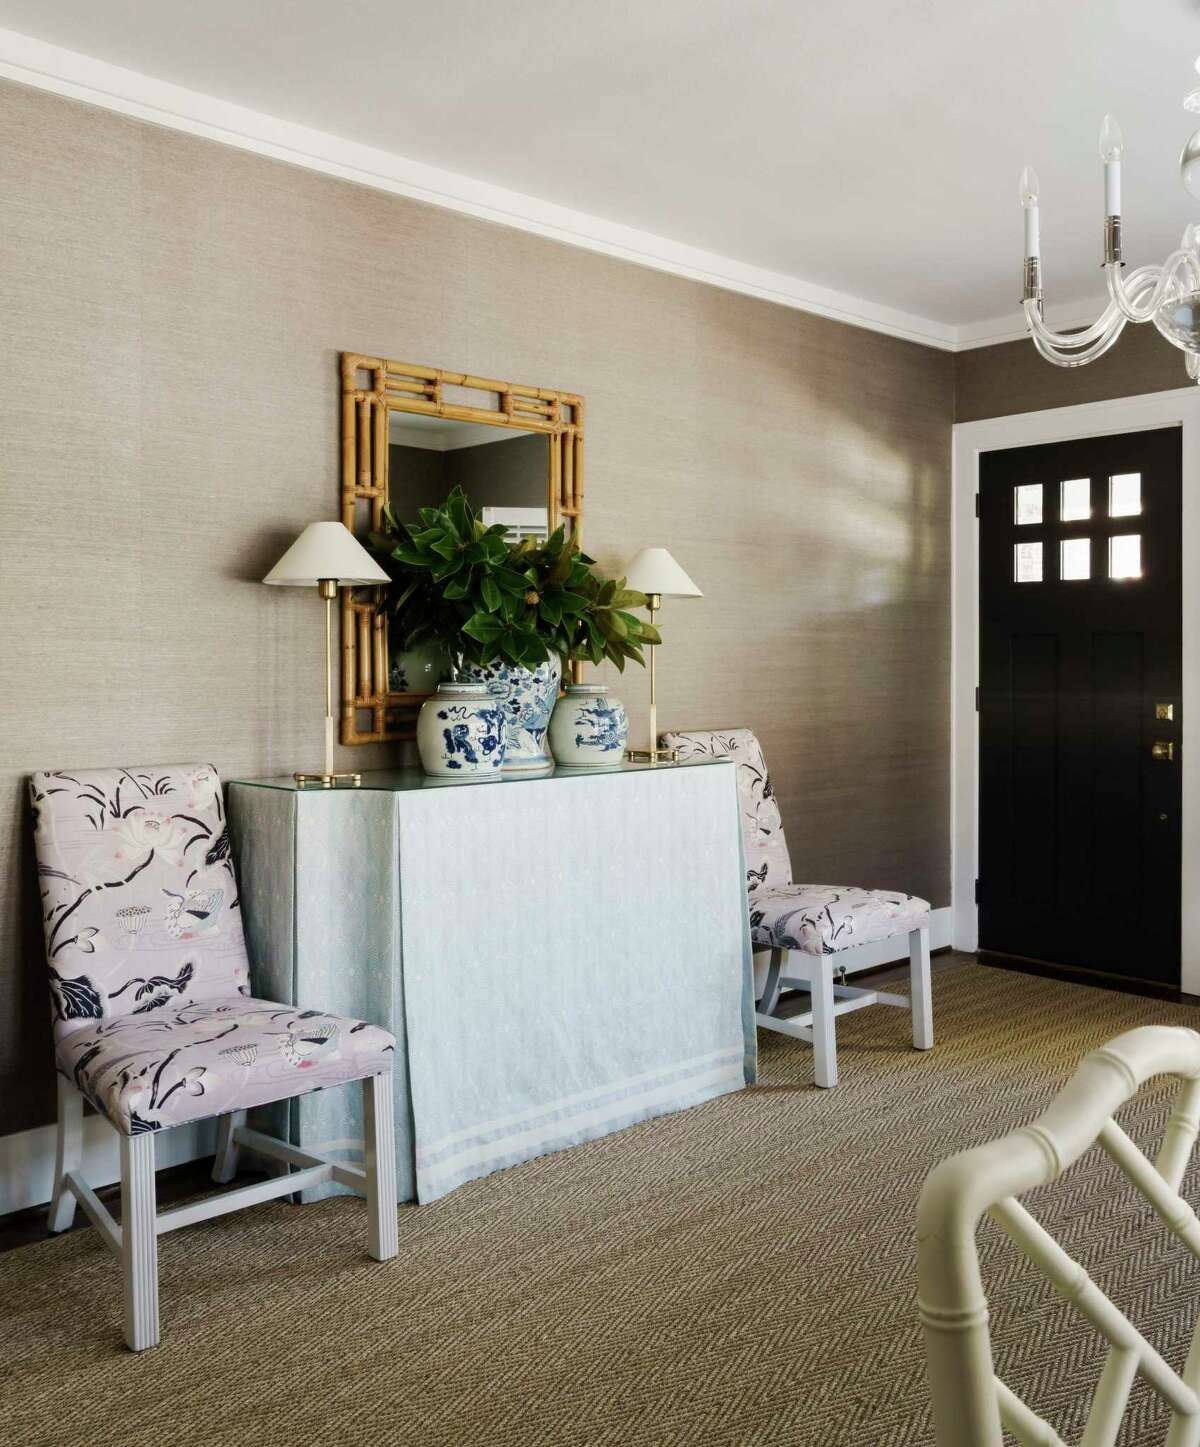 The home didn't have a formal foyer, so they created a foyer effect by plasing a hall table with a pair of chairs and other decor just inside the front door.